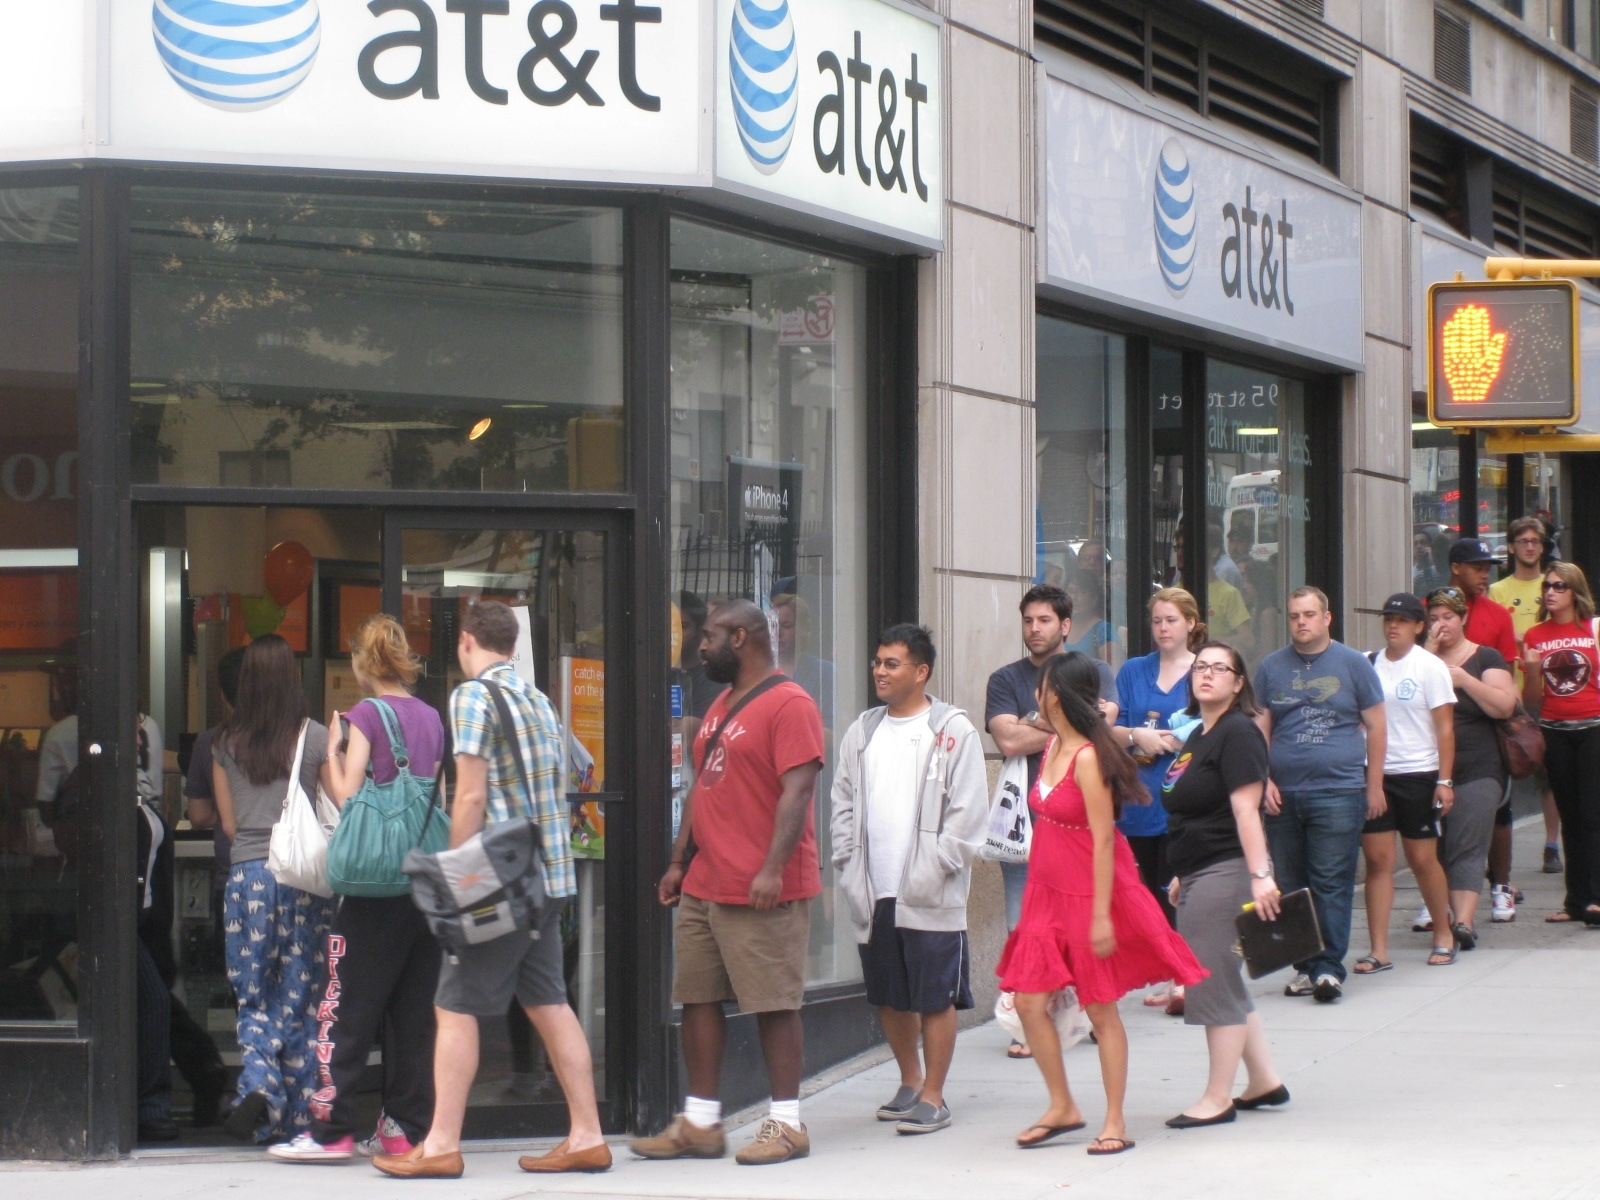 Apple's iPhone has brought record customers out to AT&T to buy the device. But the relationship is a giant headache for both companies, according to a report Monday.